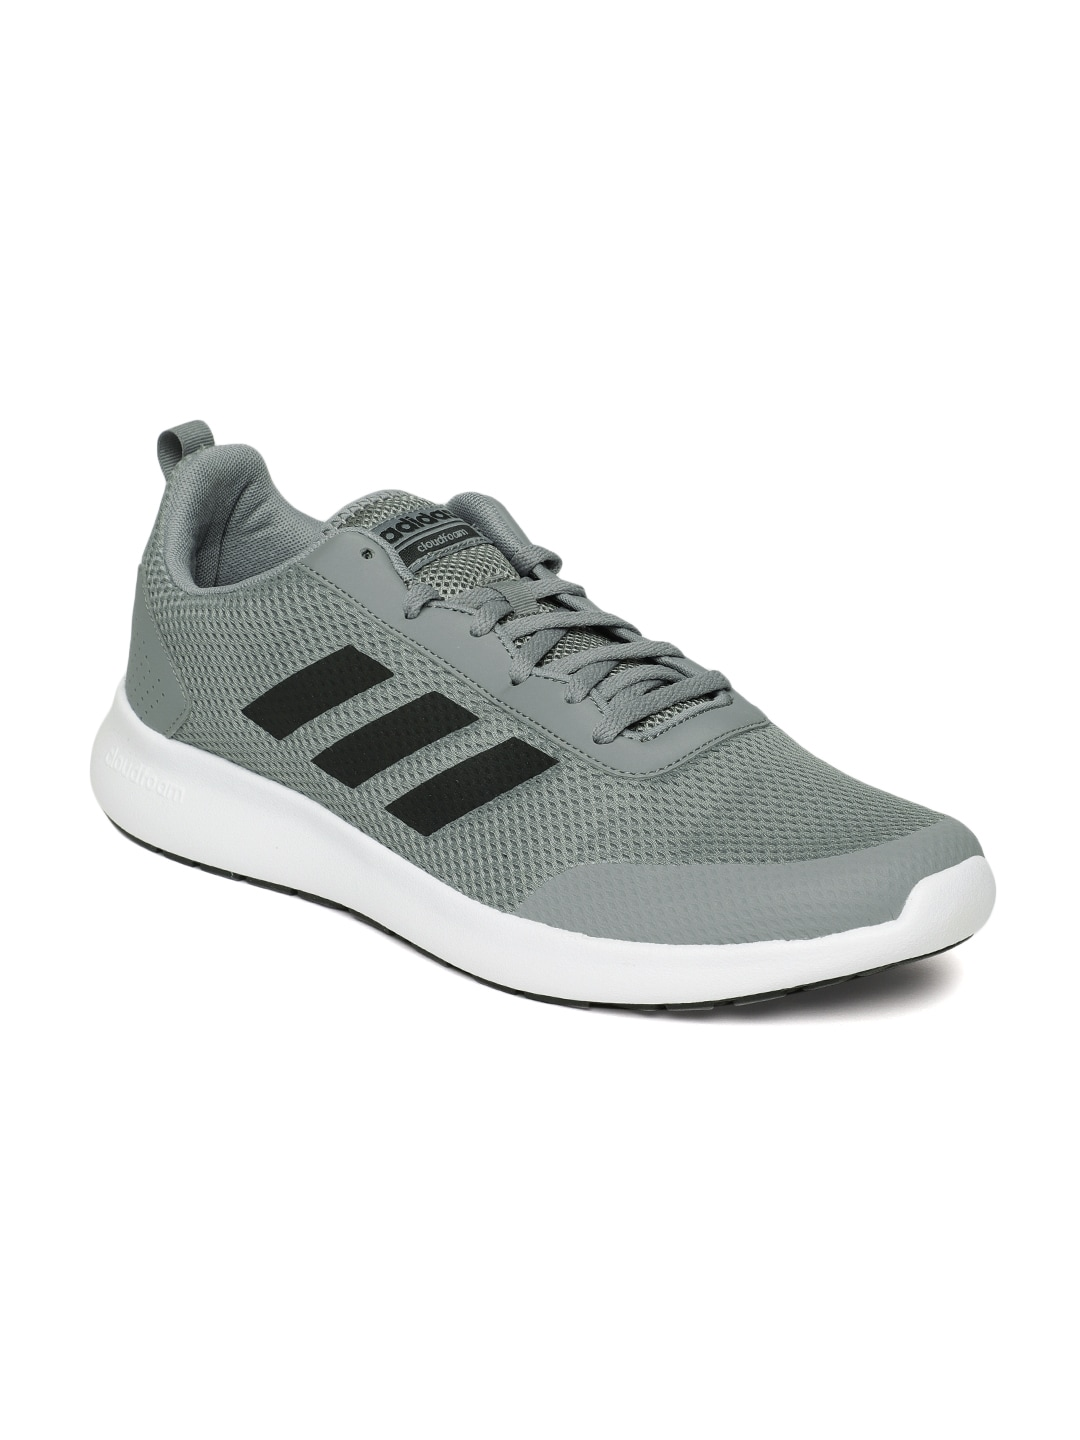 Sports Shoe Adidas Mens - Buy Sports Shoe Adidas Mens online in India 64ba9865f